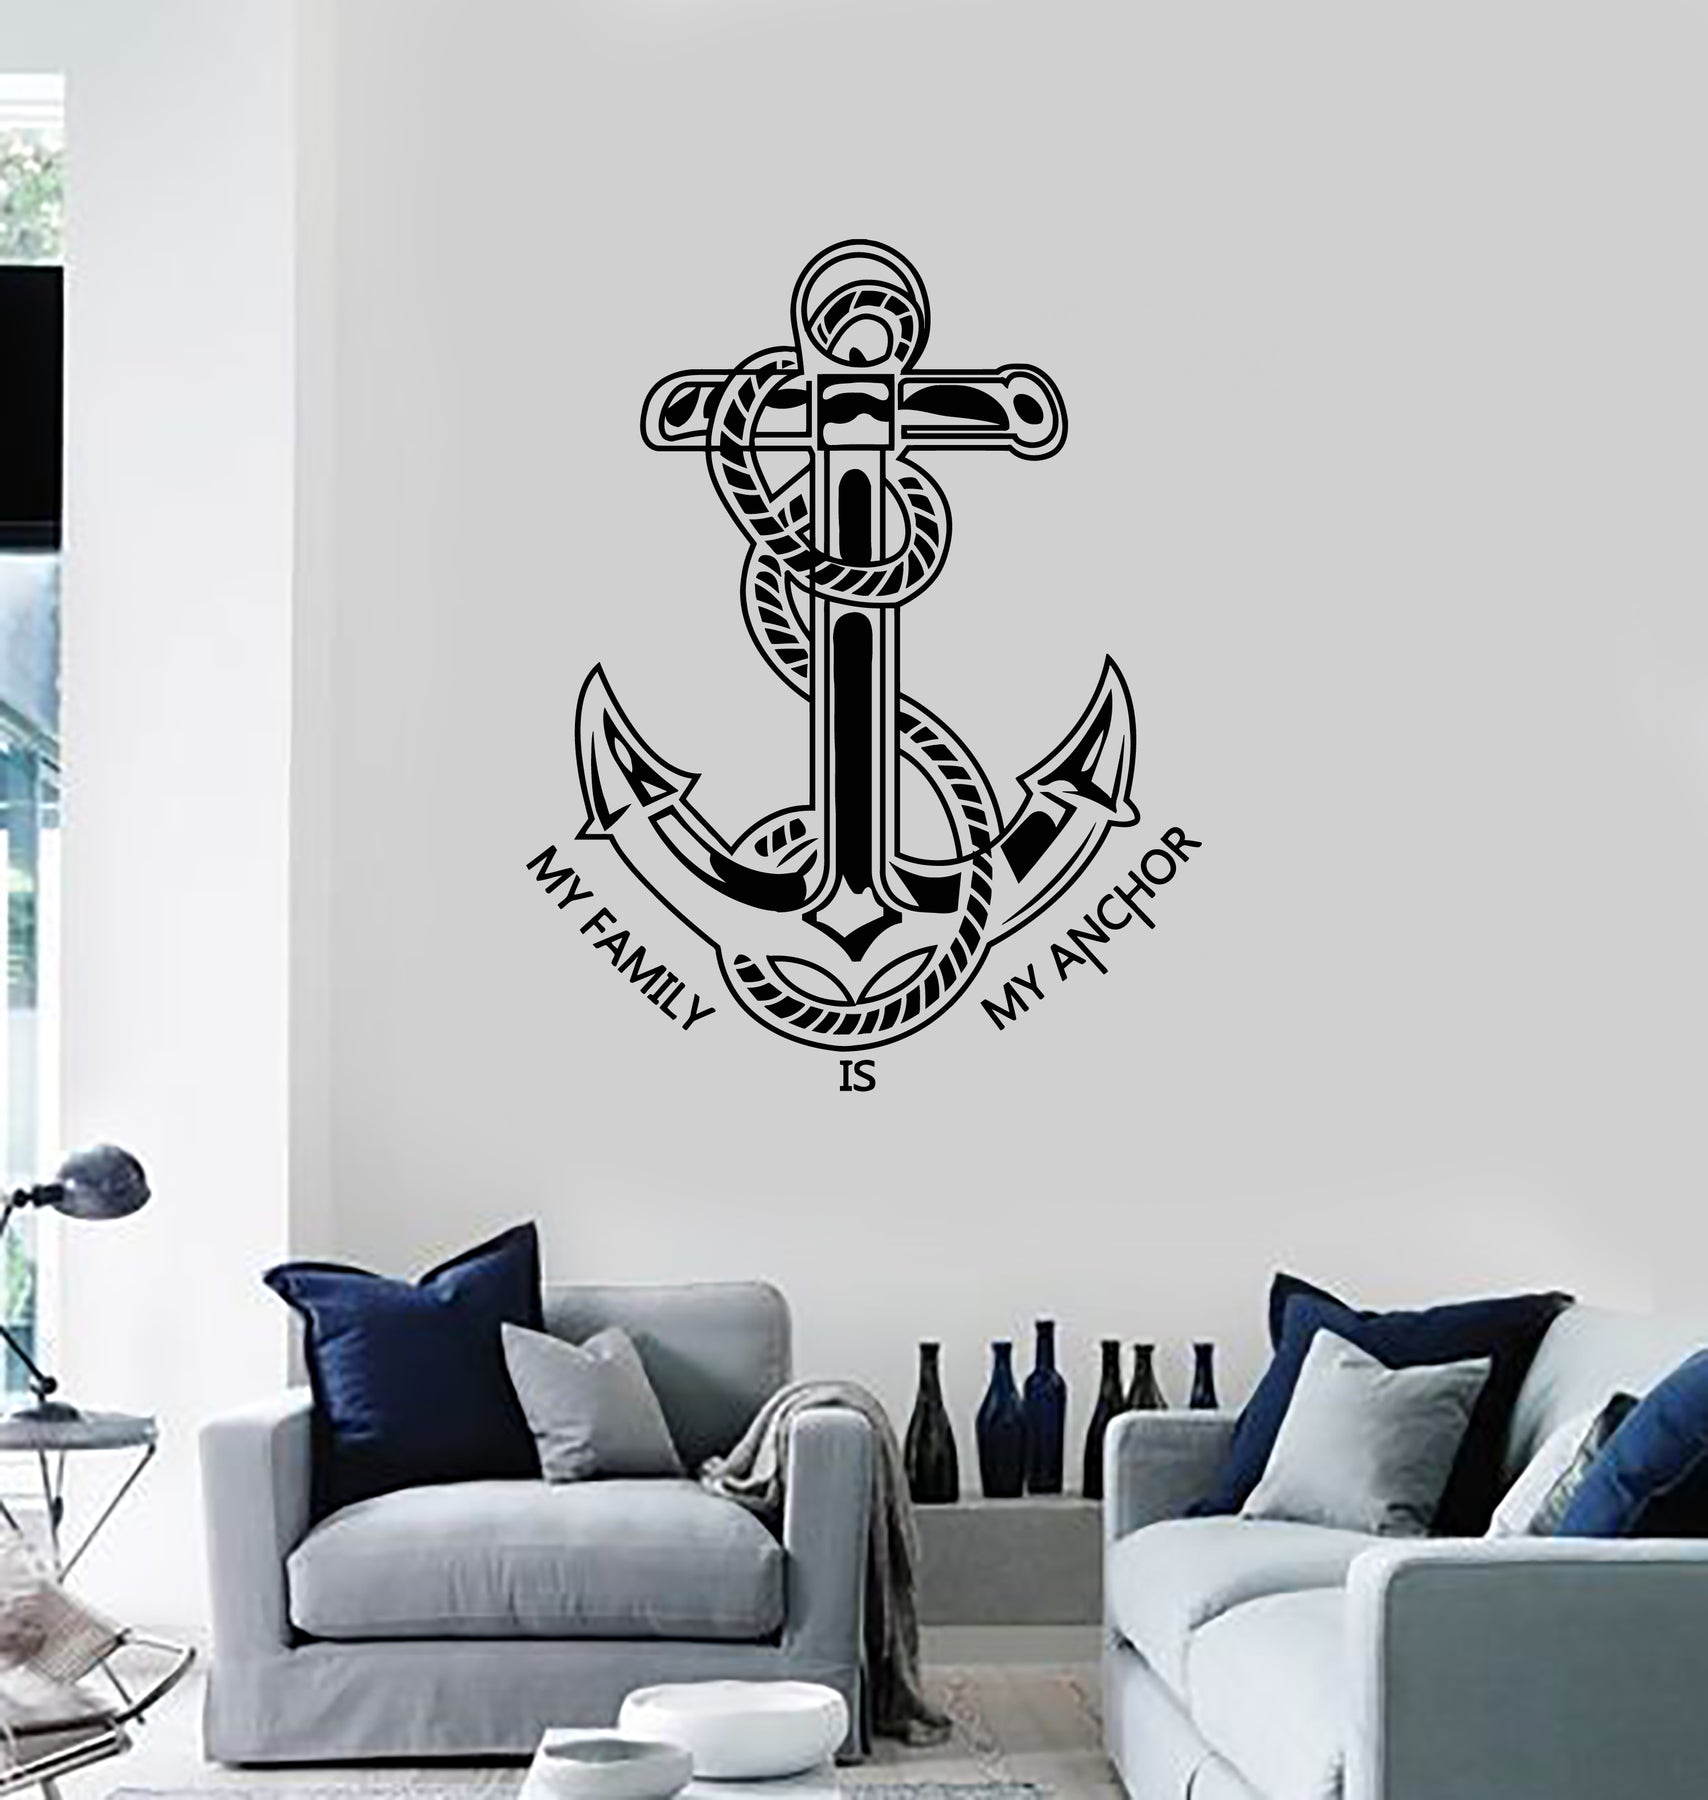 Anchor Sea Boating Vinyl Wall art Decal Sticker